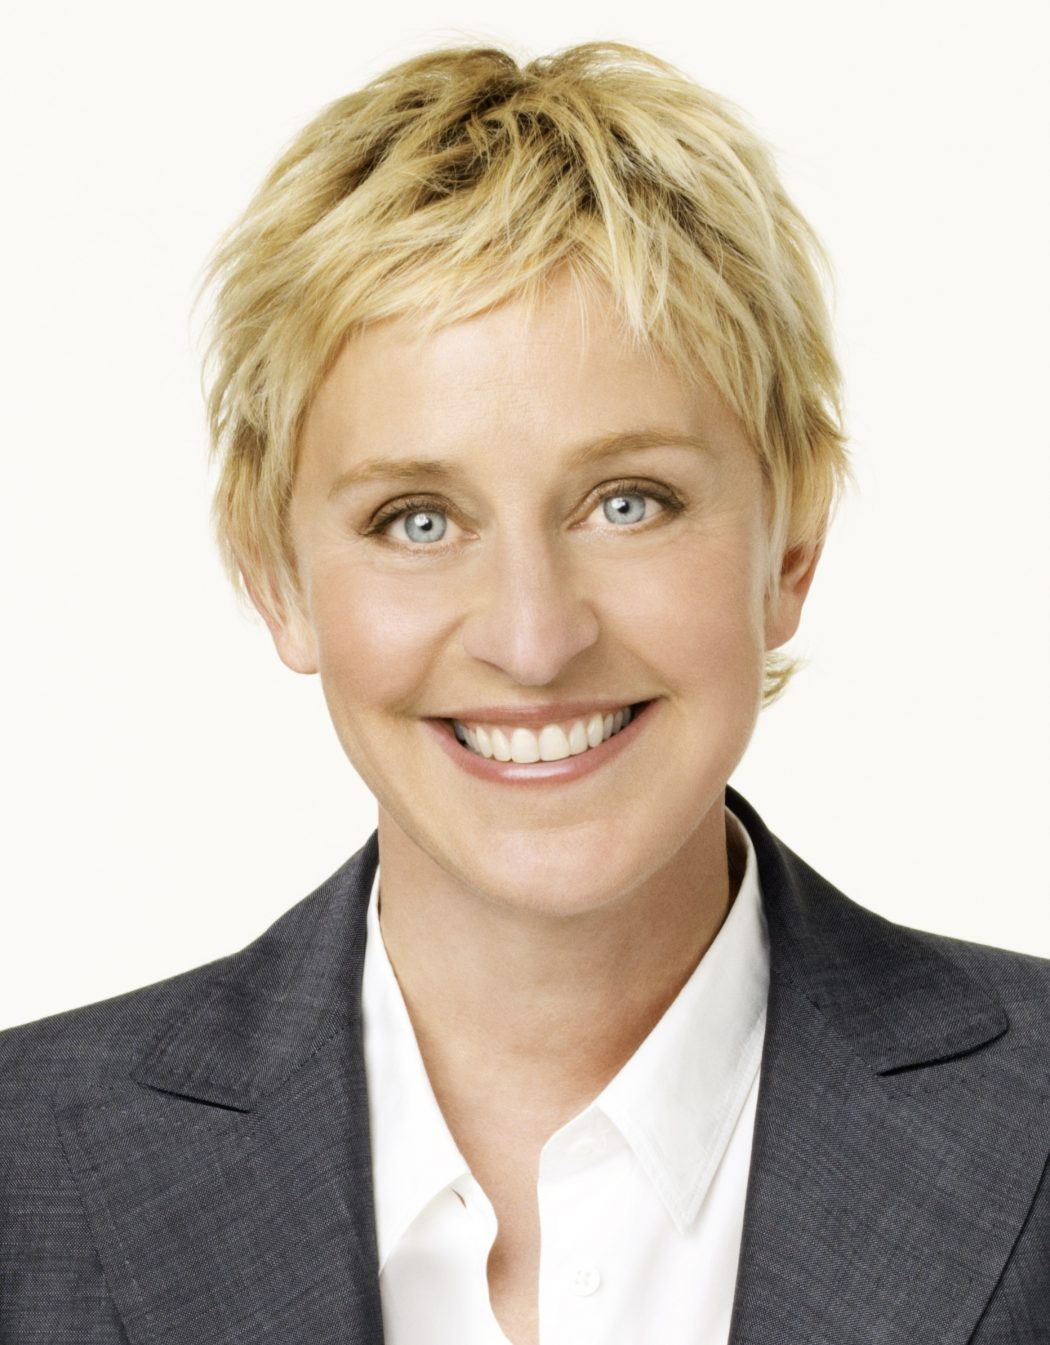 ellen_20110322192422 13 Comedians You Didn't Know Suffered From Depression